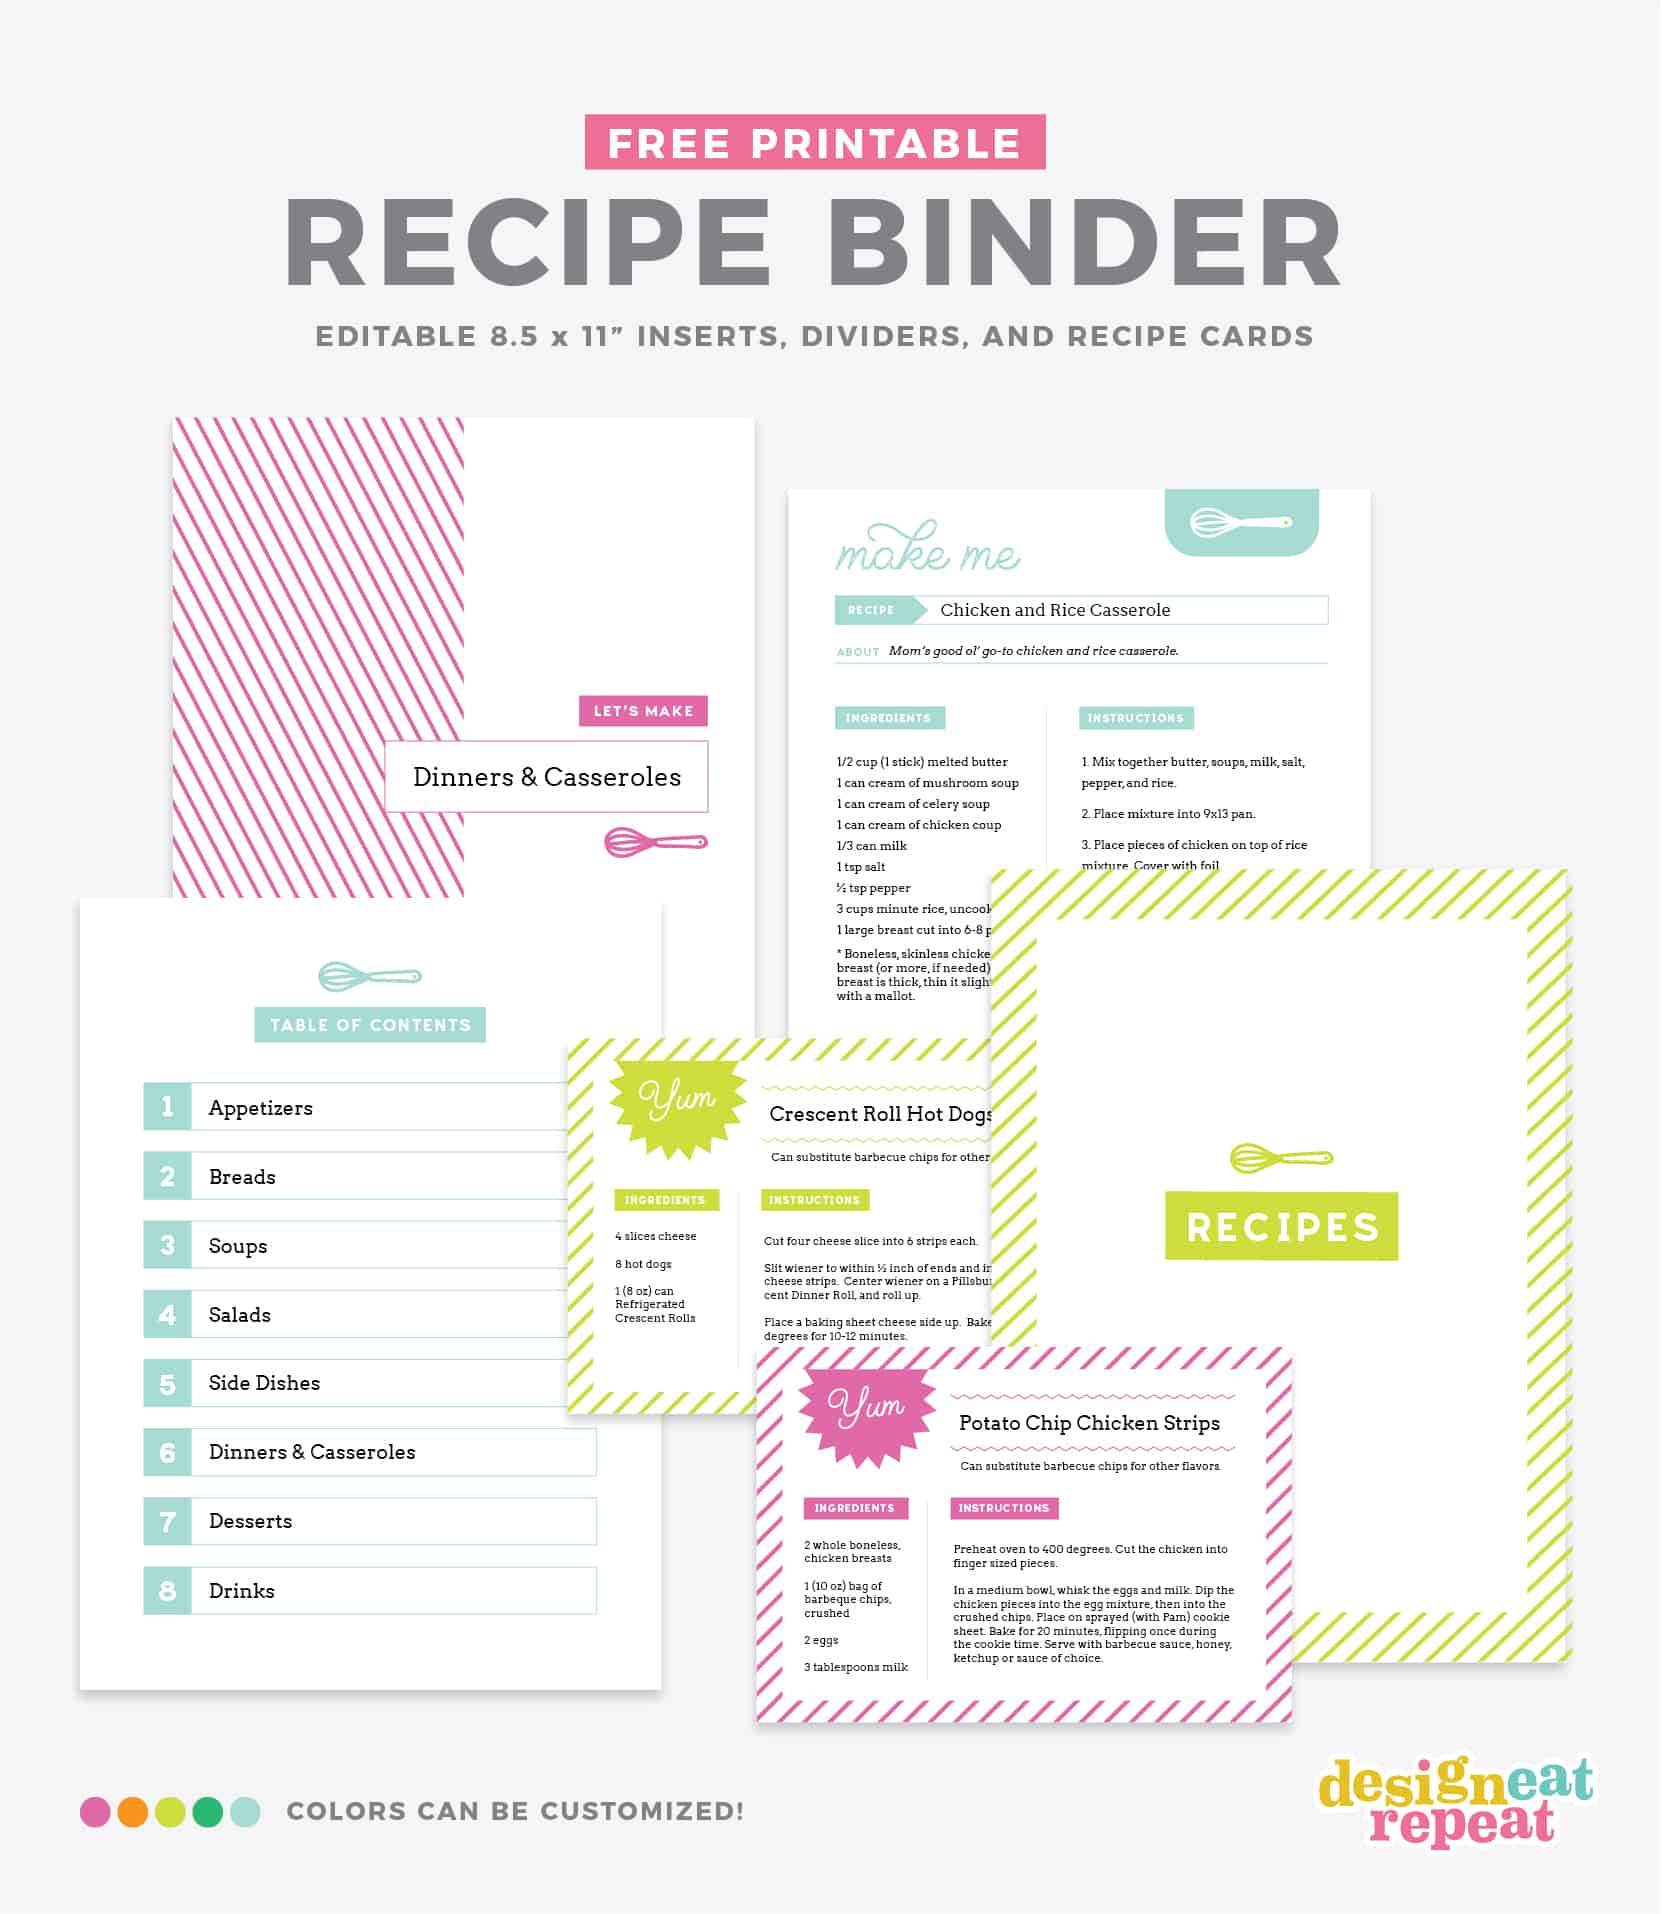 Diy Recipe Book (With Free Printable Recipe Binder Kit!) - Free Printable Recipes